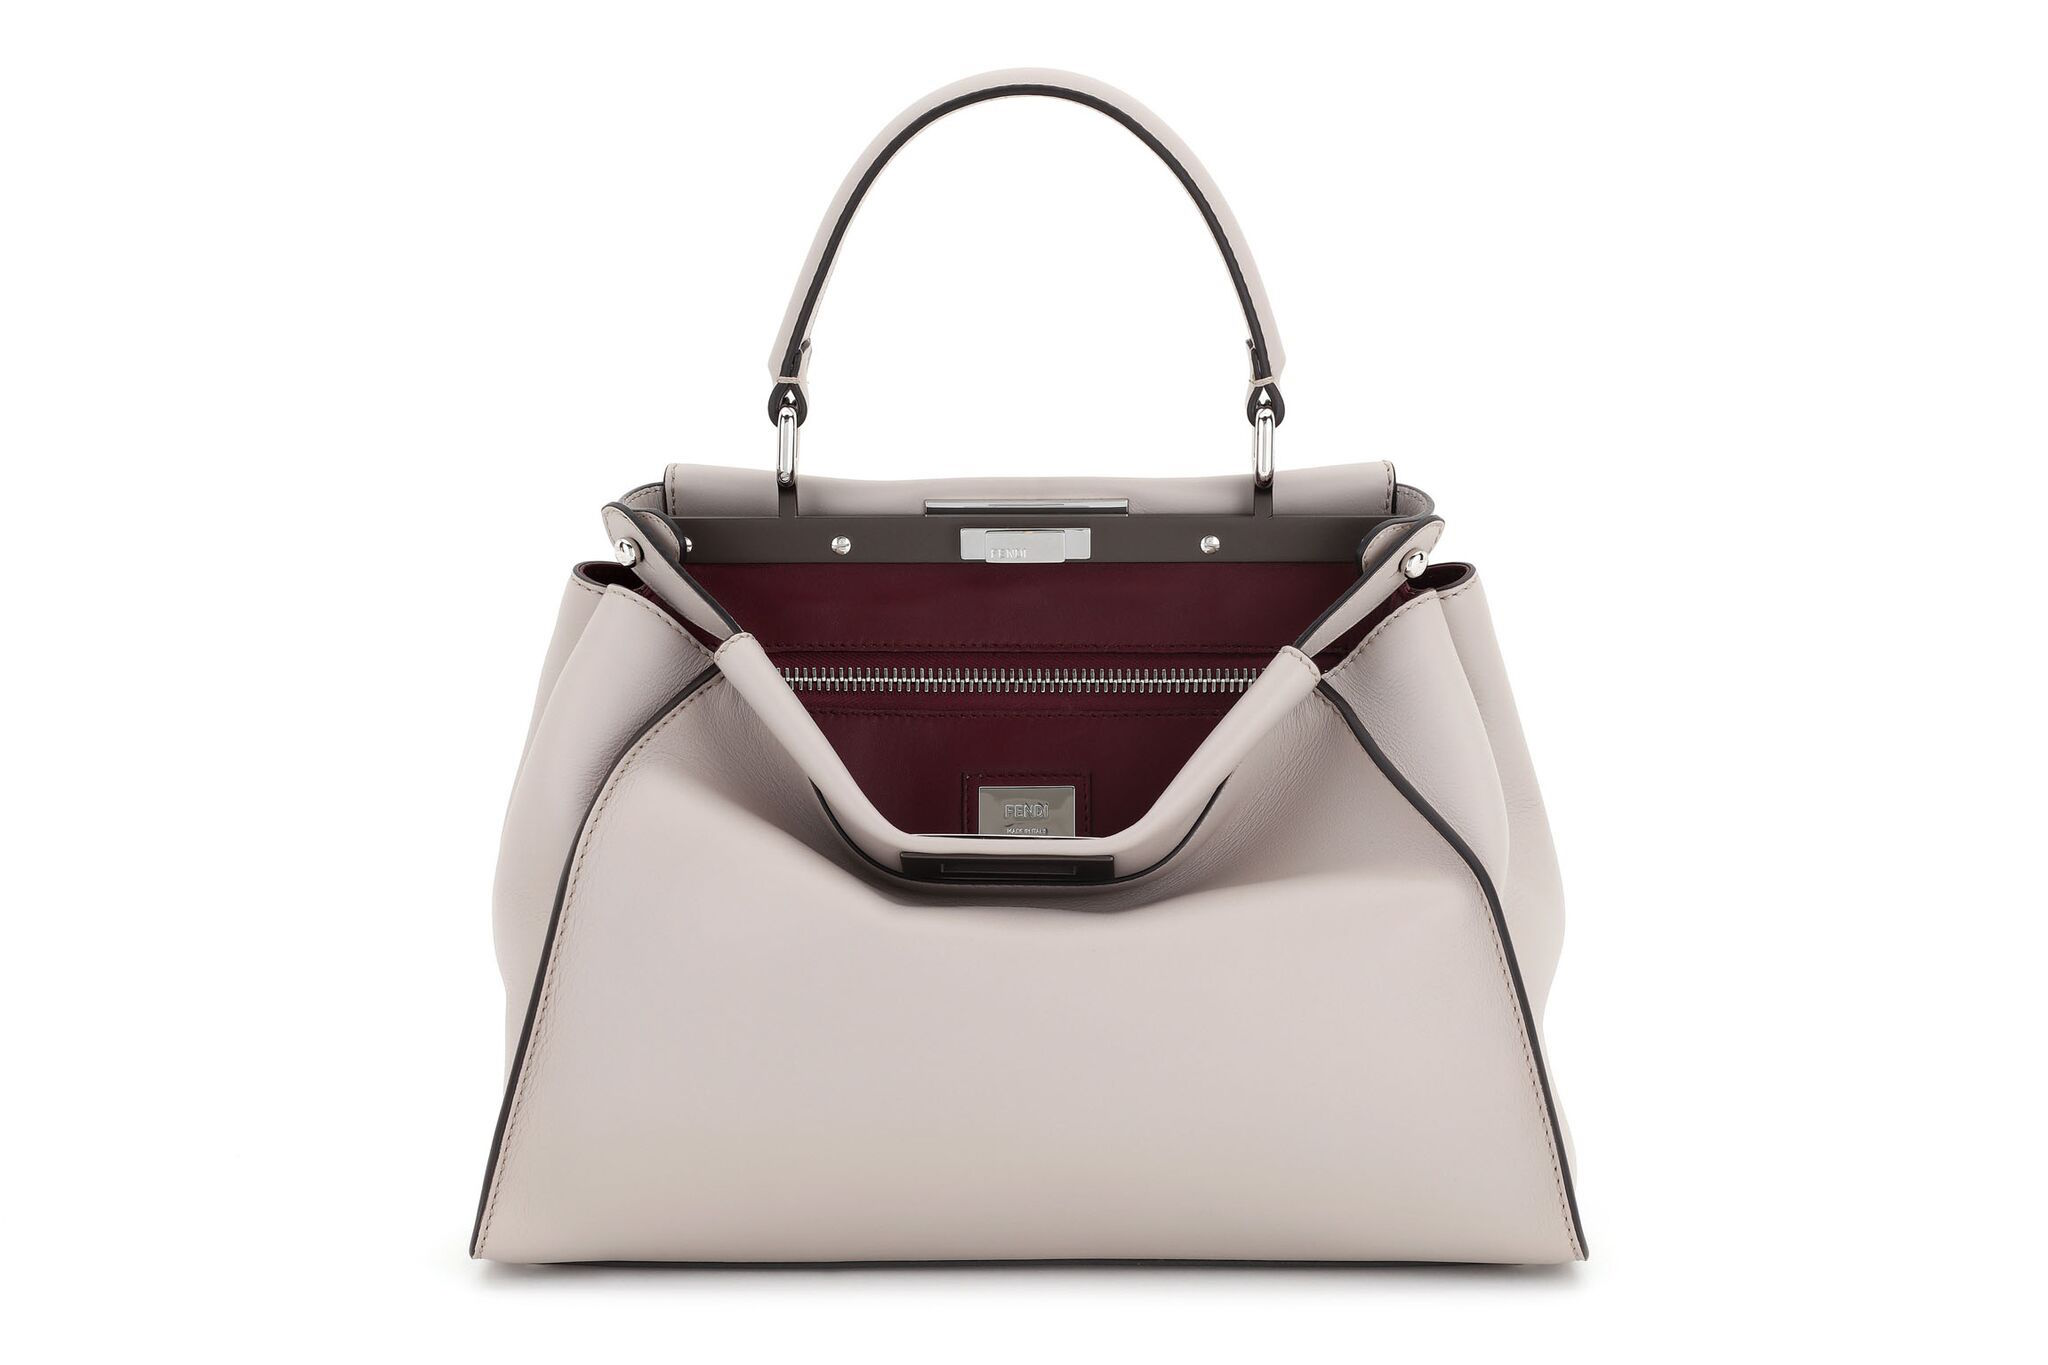 Fendi's regular Peekaboo purse in grey powder calf leather